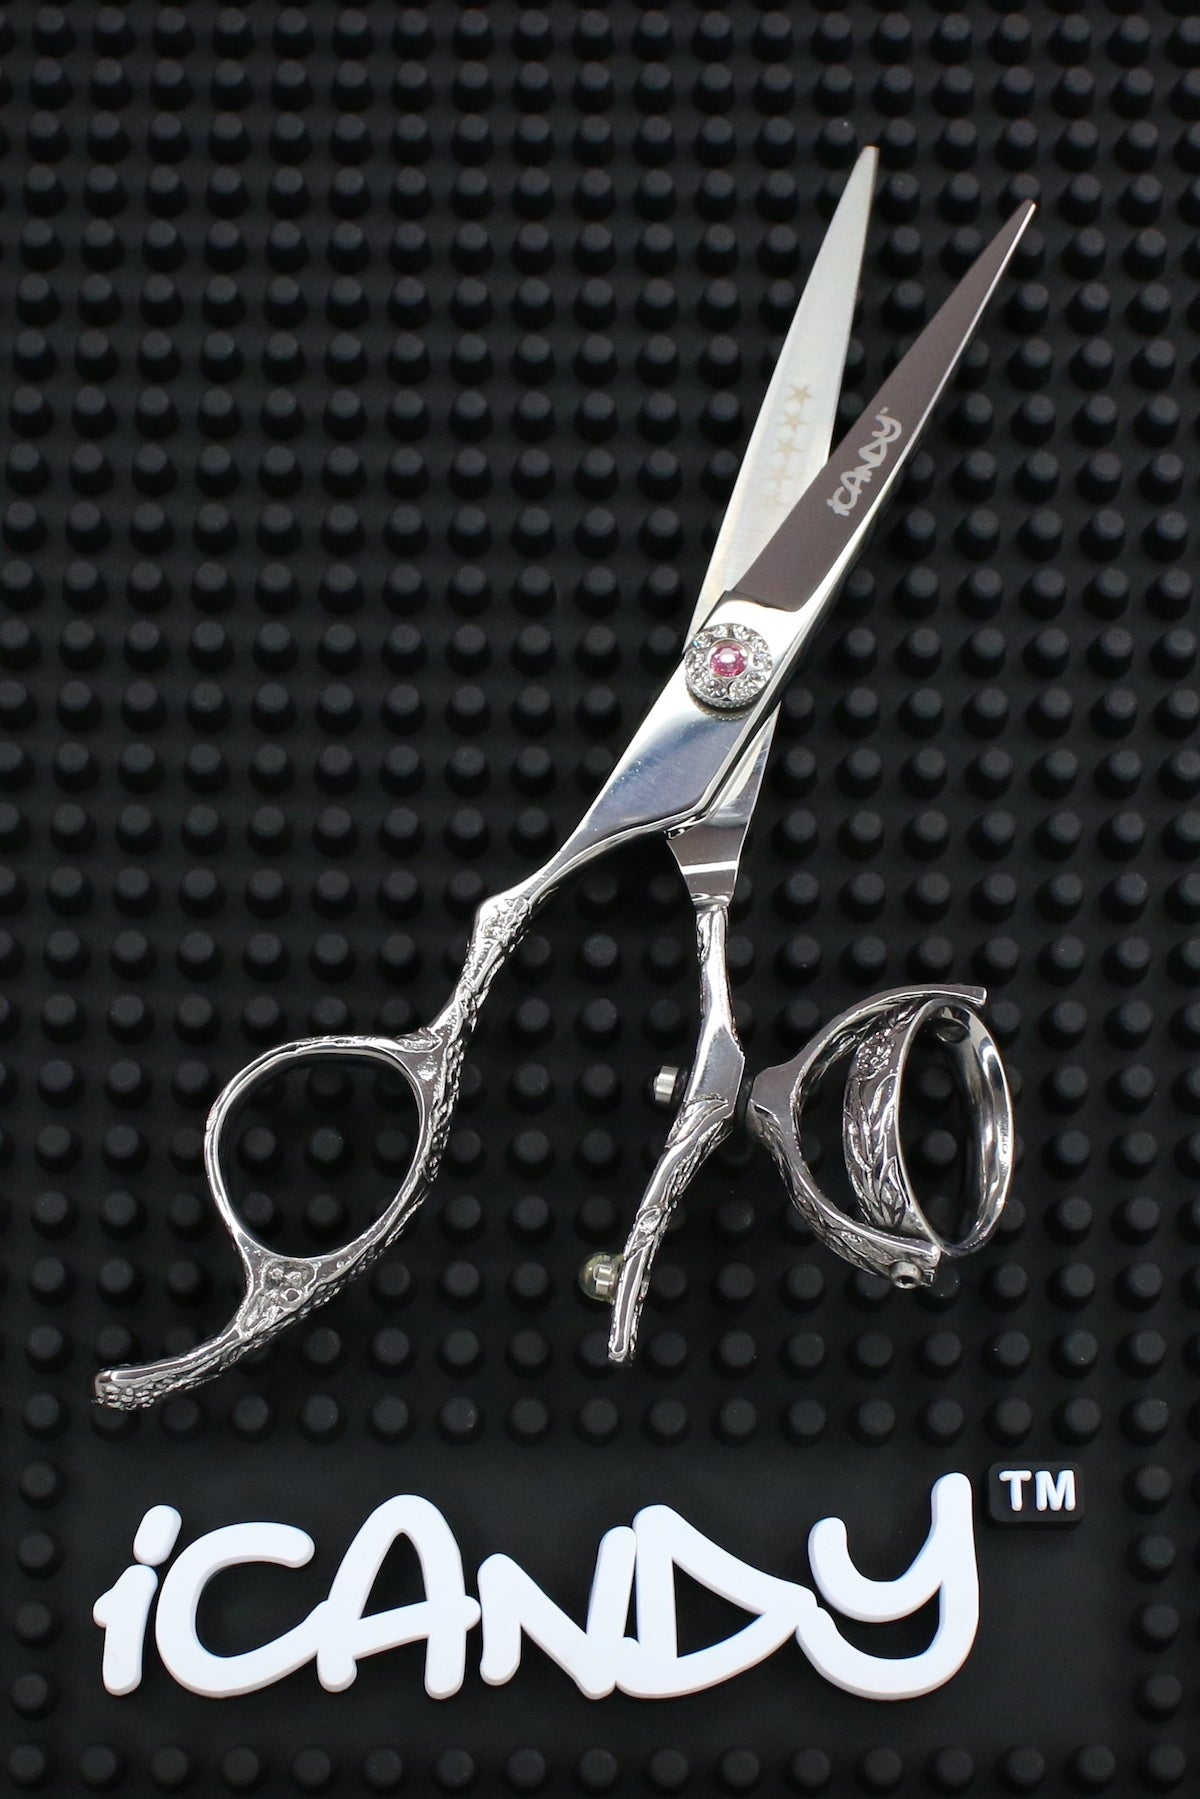 iCandy Dream Mirror Lefty Swivel Scissors Bundle- Limited Edition !  (5.5 inch) - iCandy Scissors